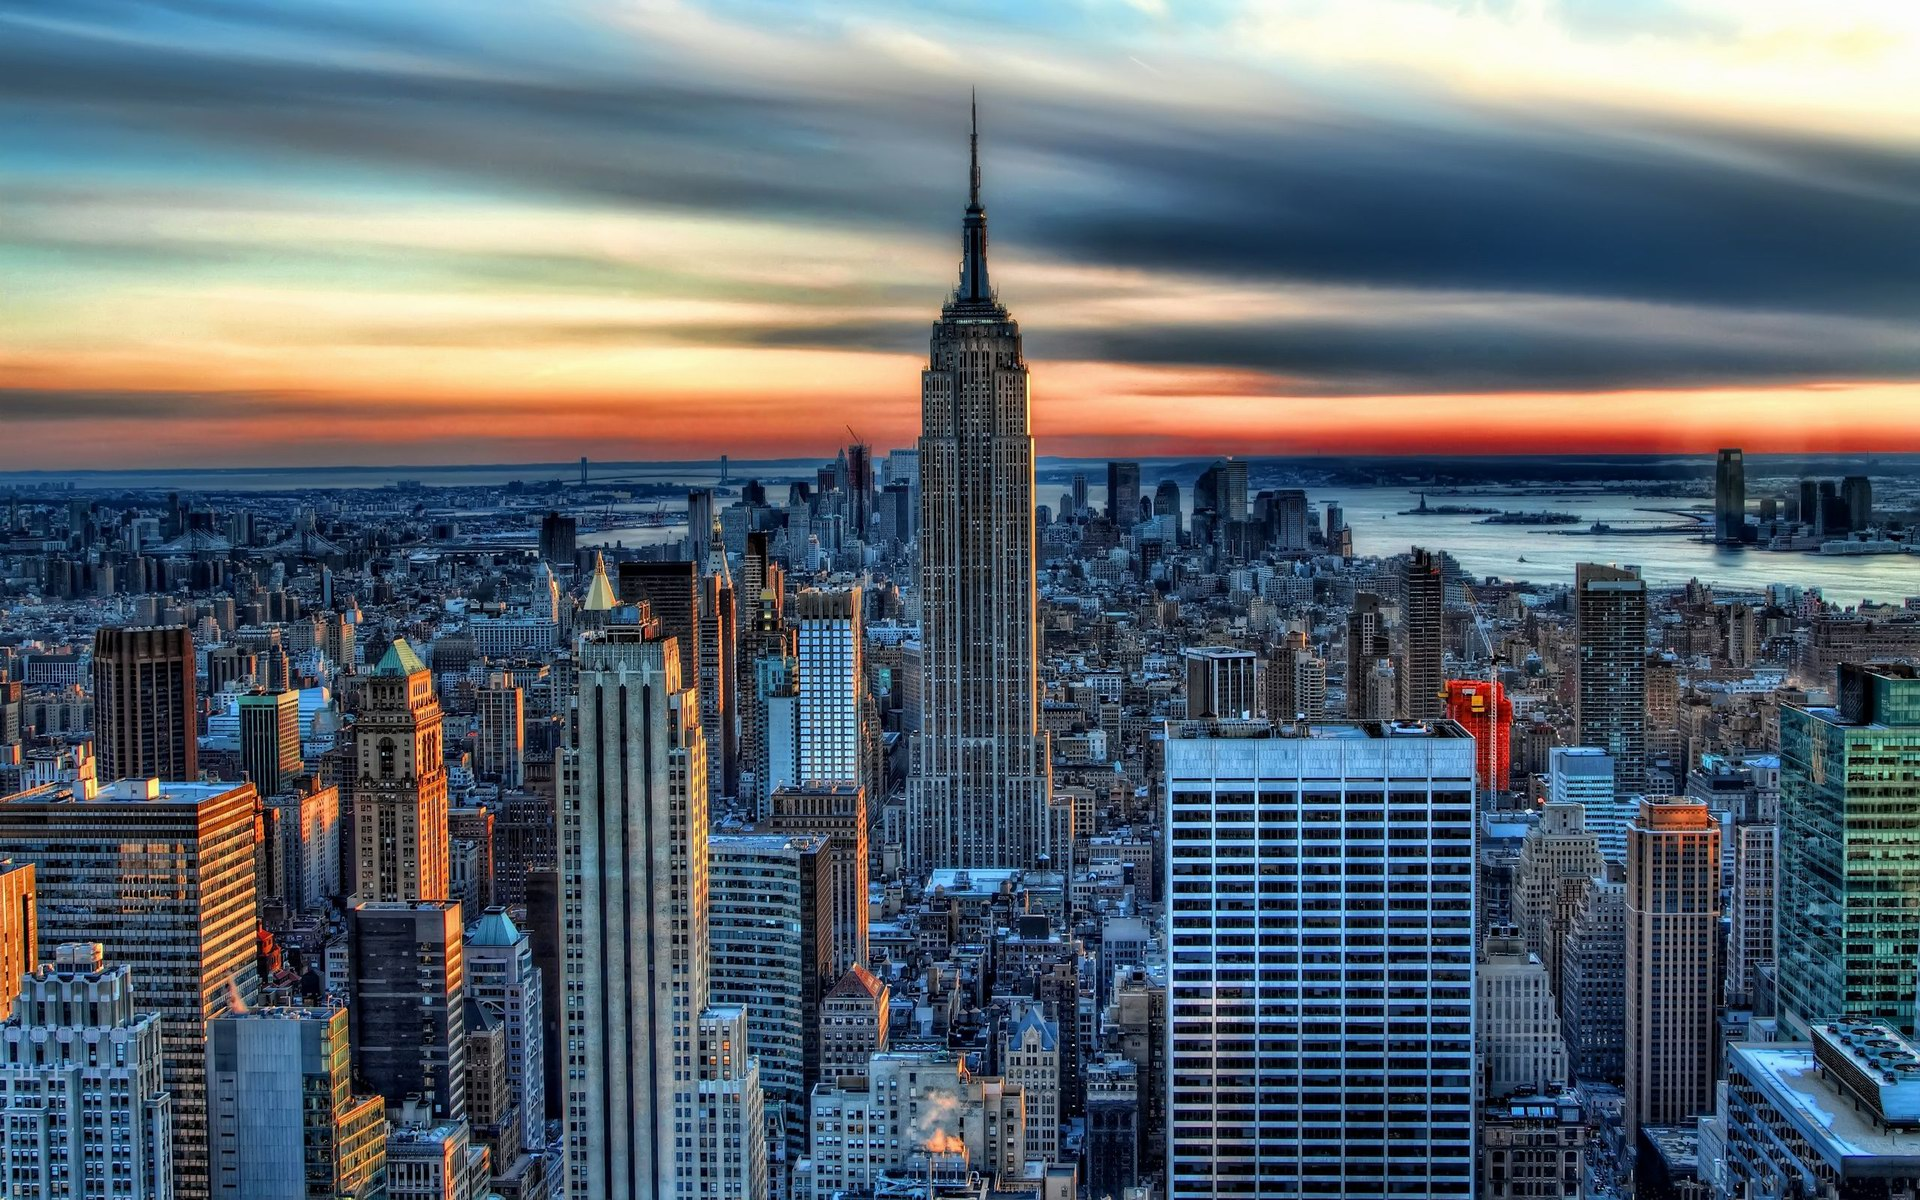 Hd New York City Wallpapers Backgrounds For Free Download 1920x1200